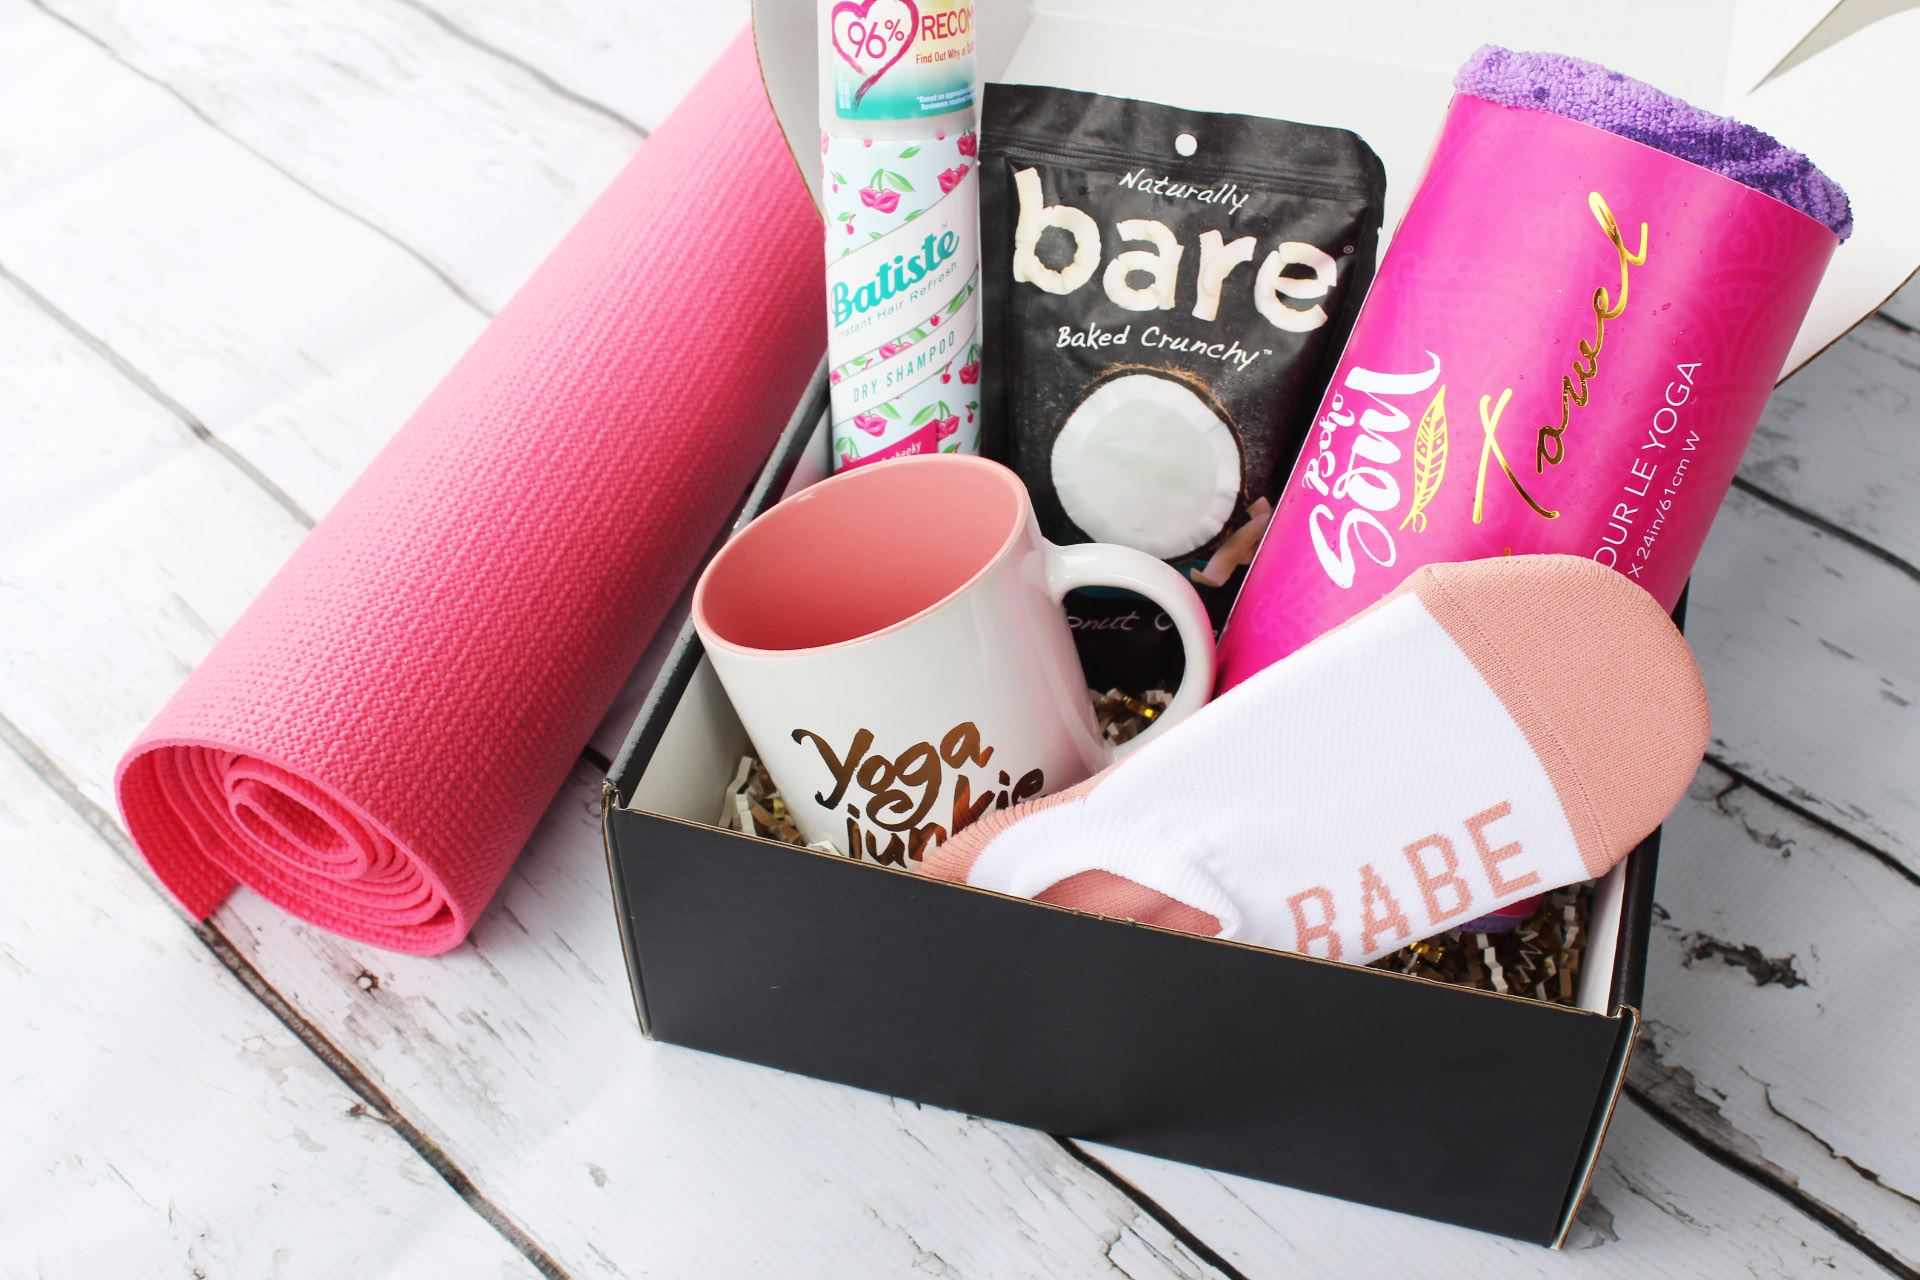 The Om Babes subscription box is a monthly yoga subscription that delivers 4-6 yoga tools, personal development and beauty products to your door for $39.95